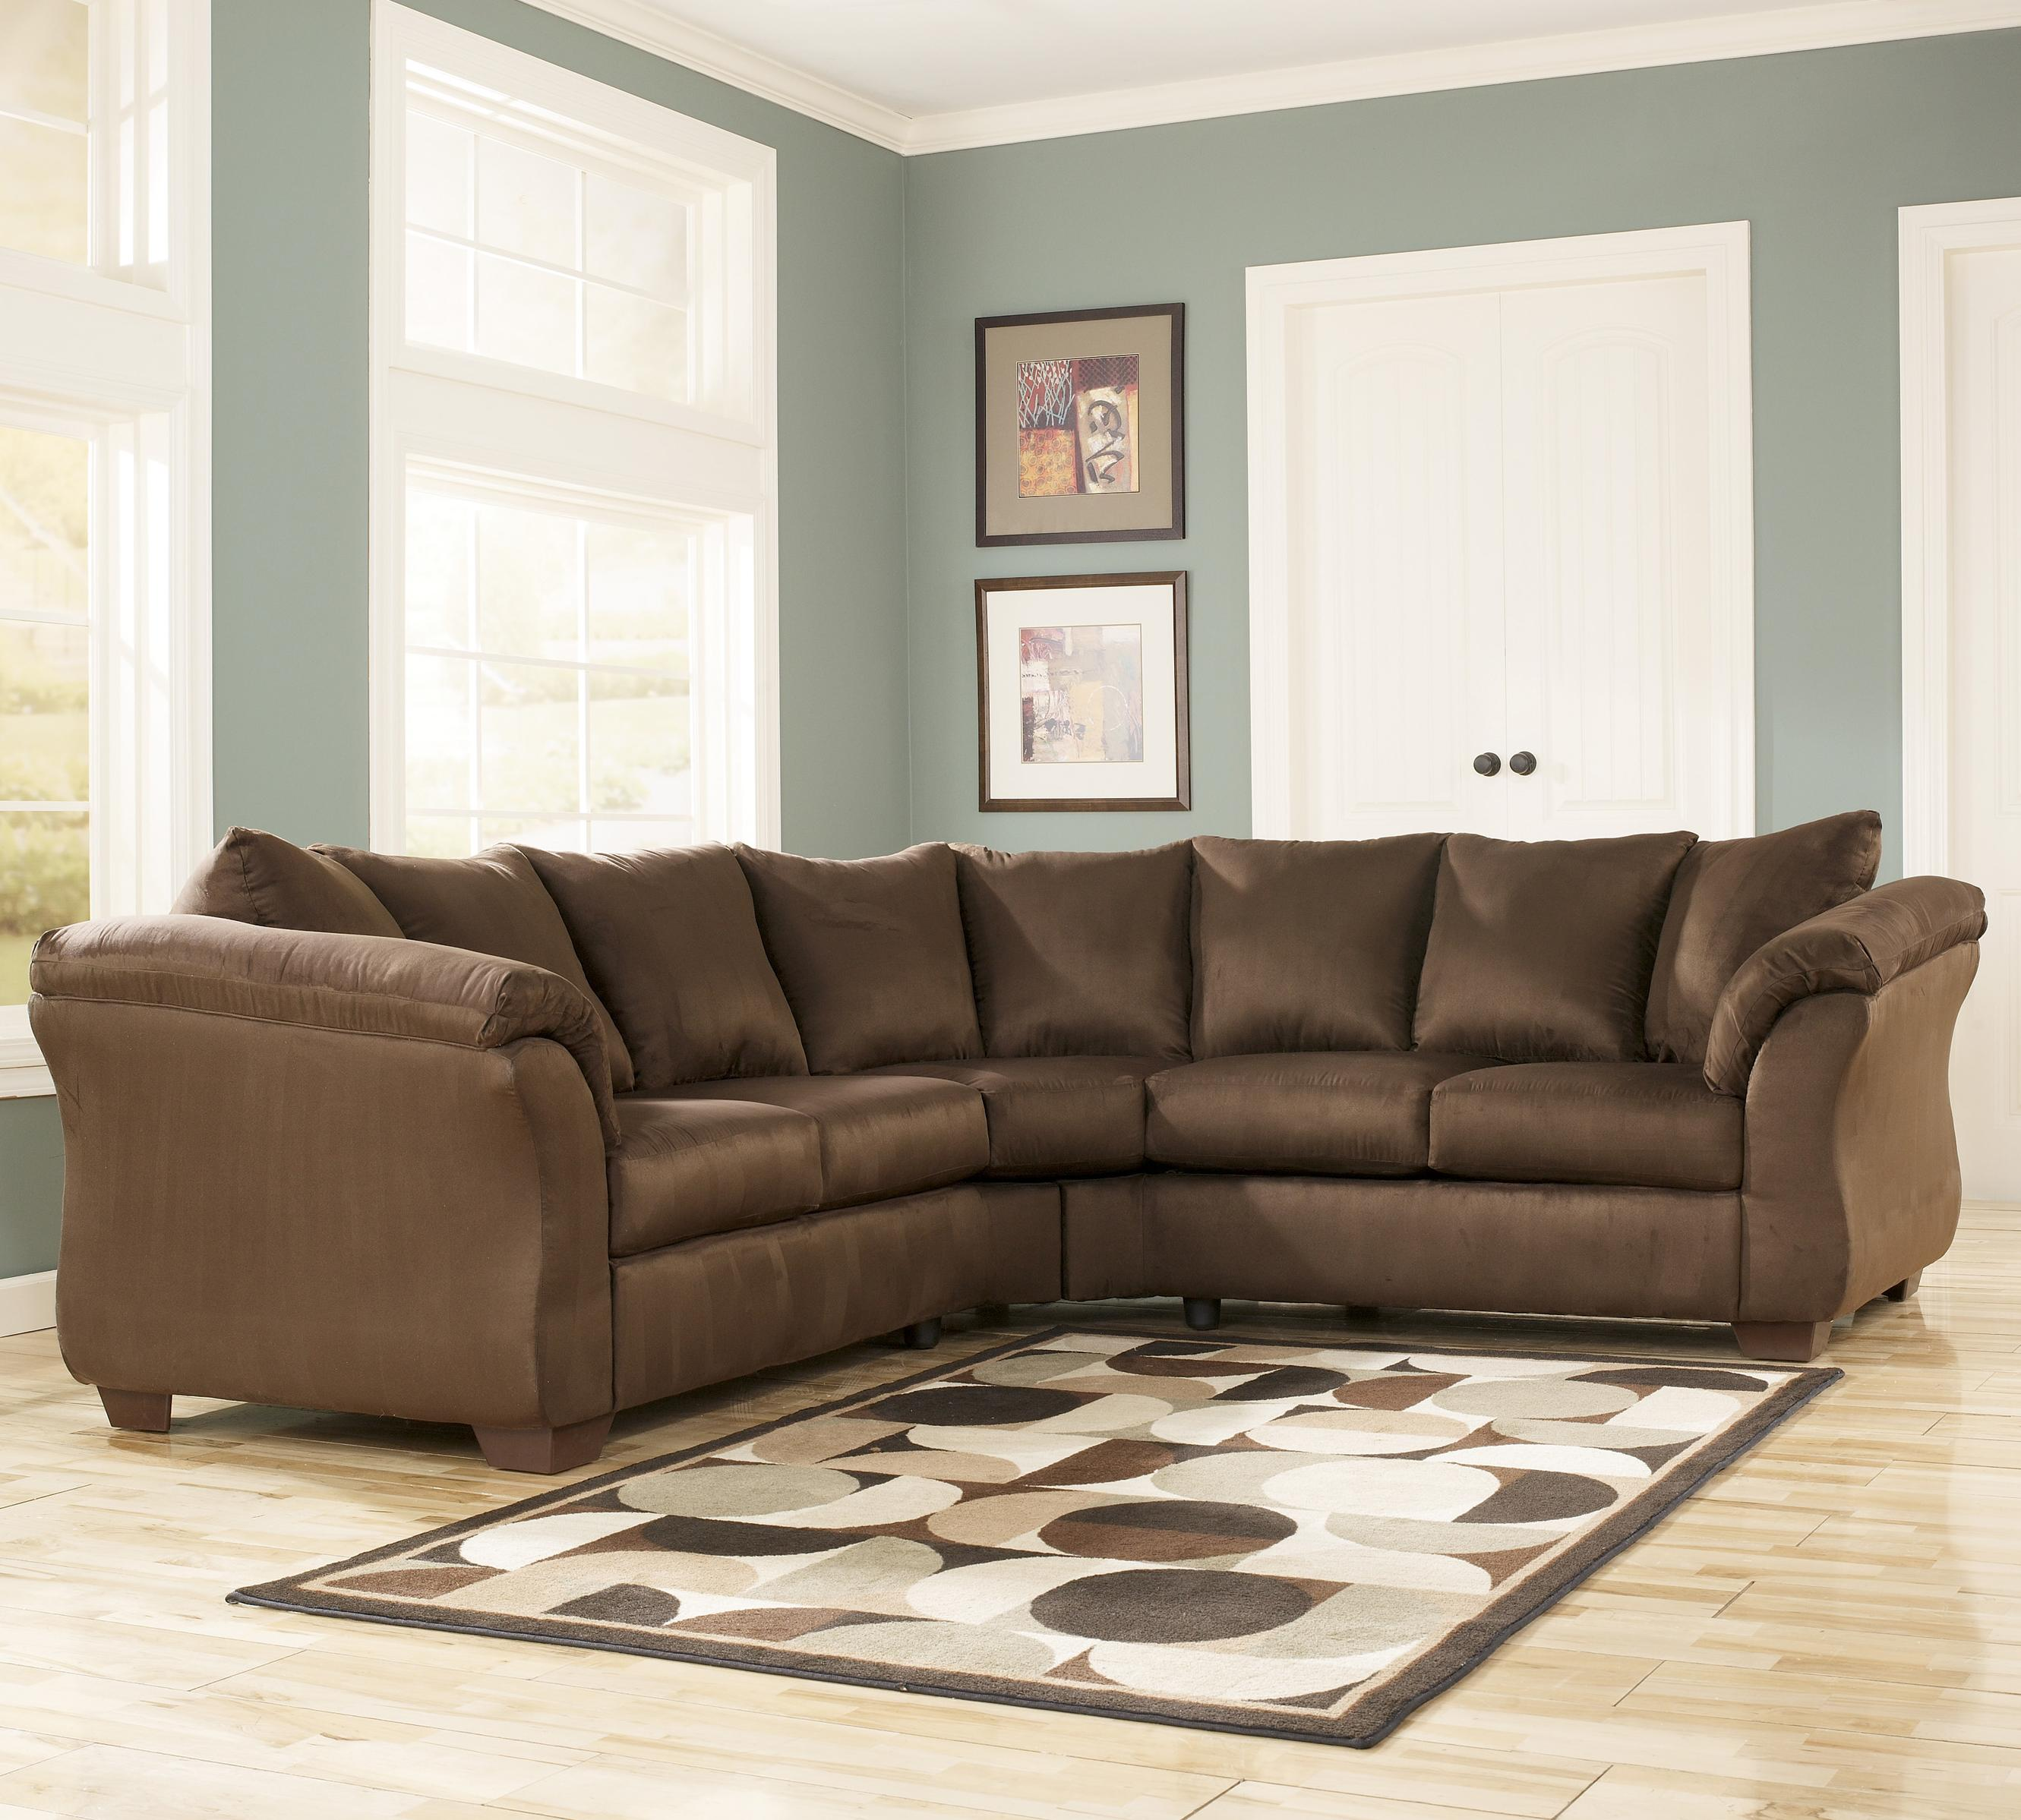 Signature Design by Ashley Darcy - Cafe Sectional Sofa - Item Number: 7500455+7500456